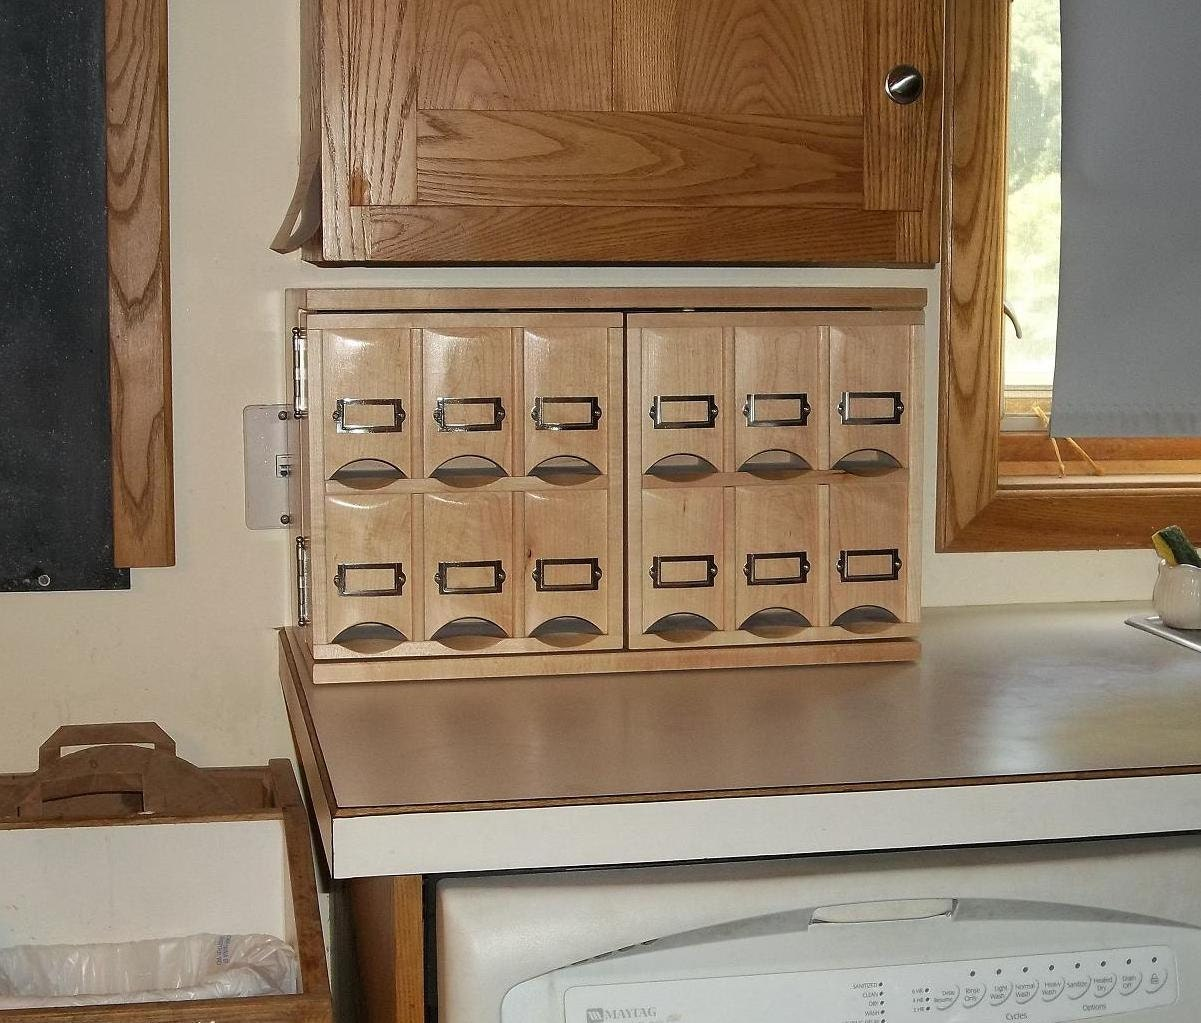 Countertop Kitchen Storage : Small Countertop Tea Storage Cabinet made when ordered